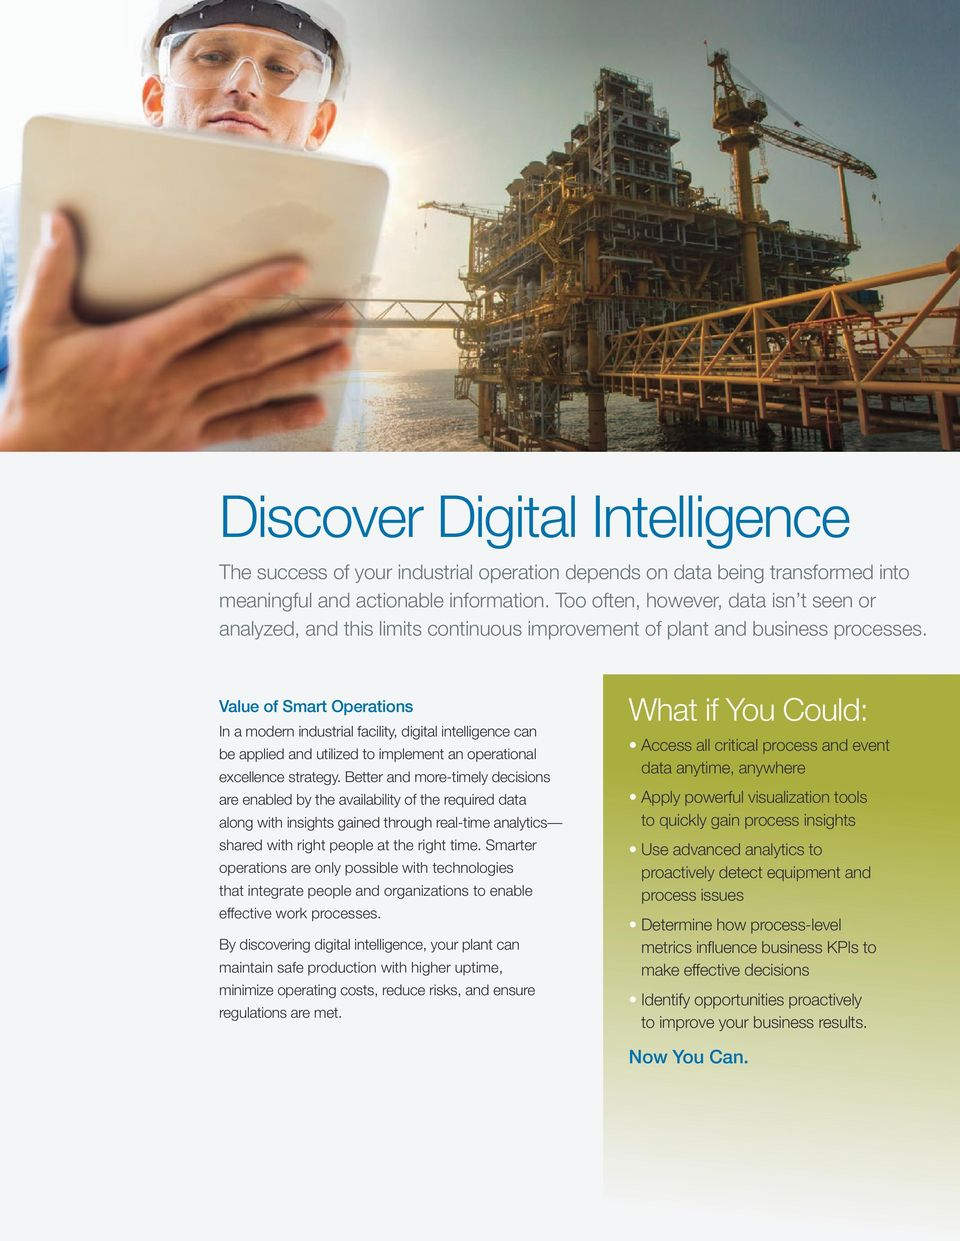 Value of Smart Operations In a modern industrial facility, digital intelligence can be applied and utilized to implement an operational excellence strategy.